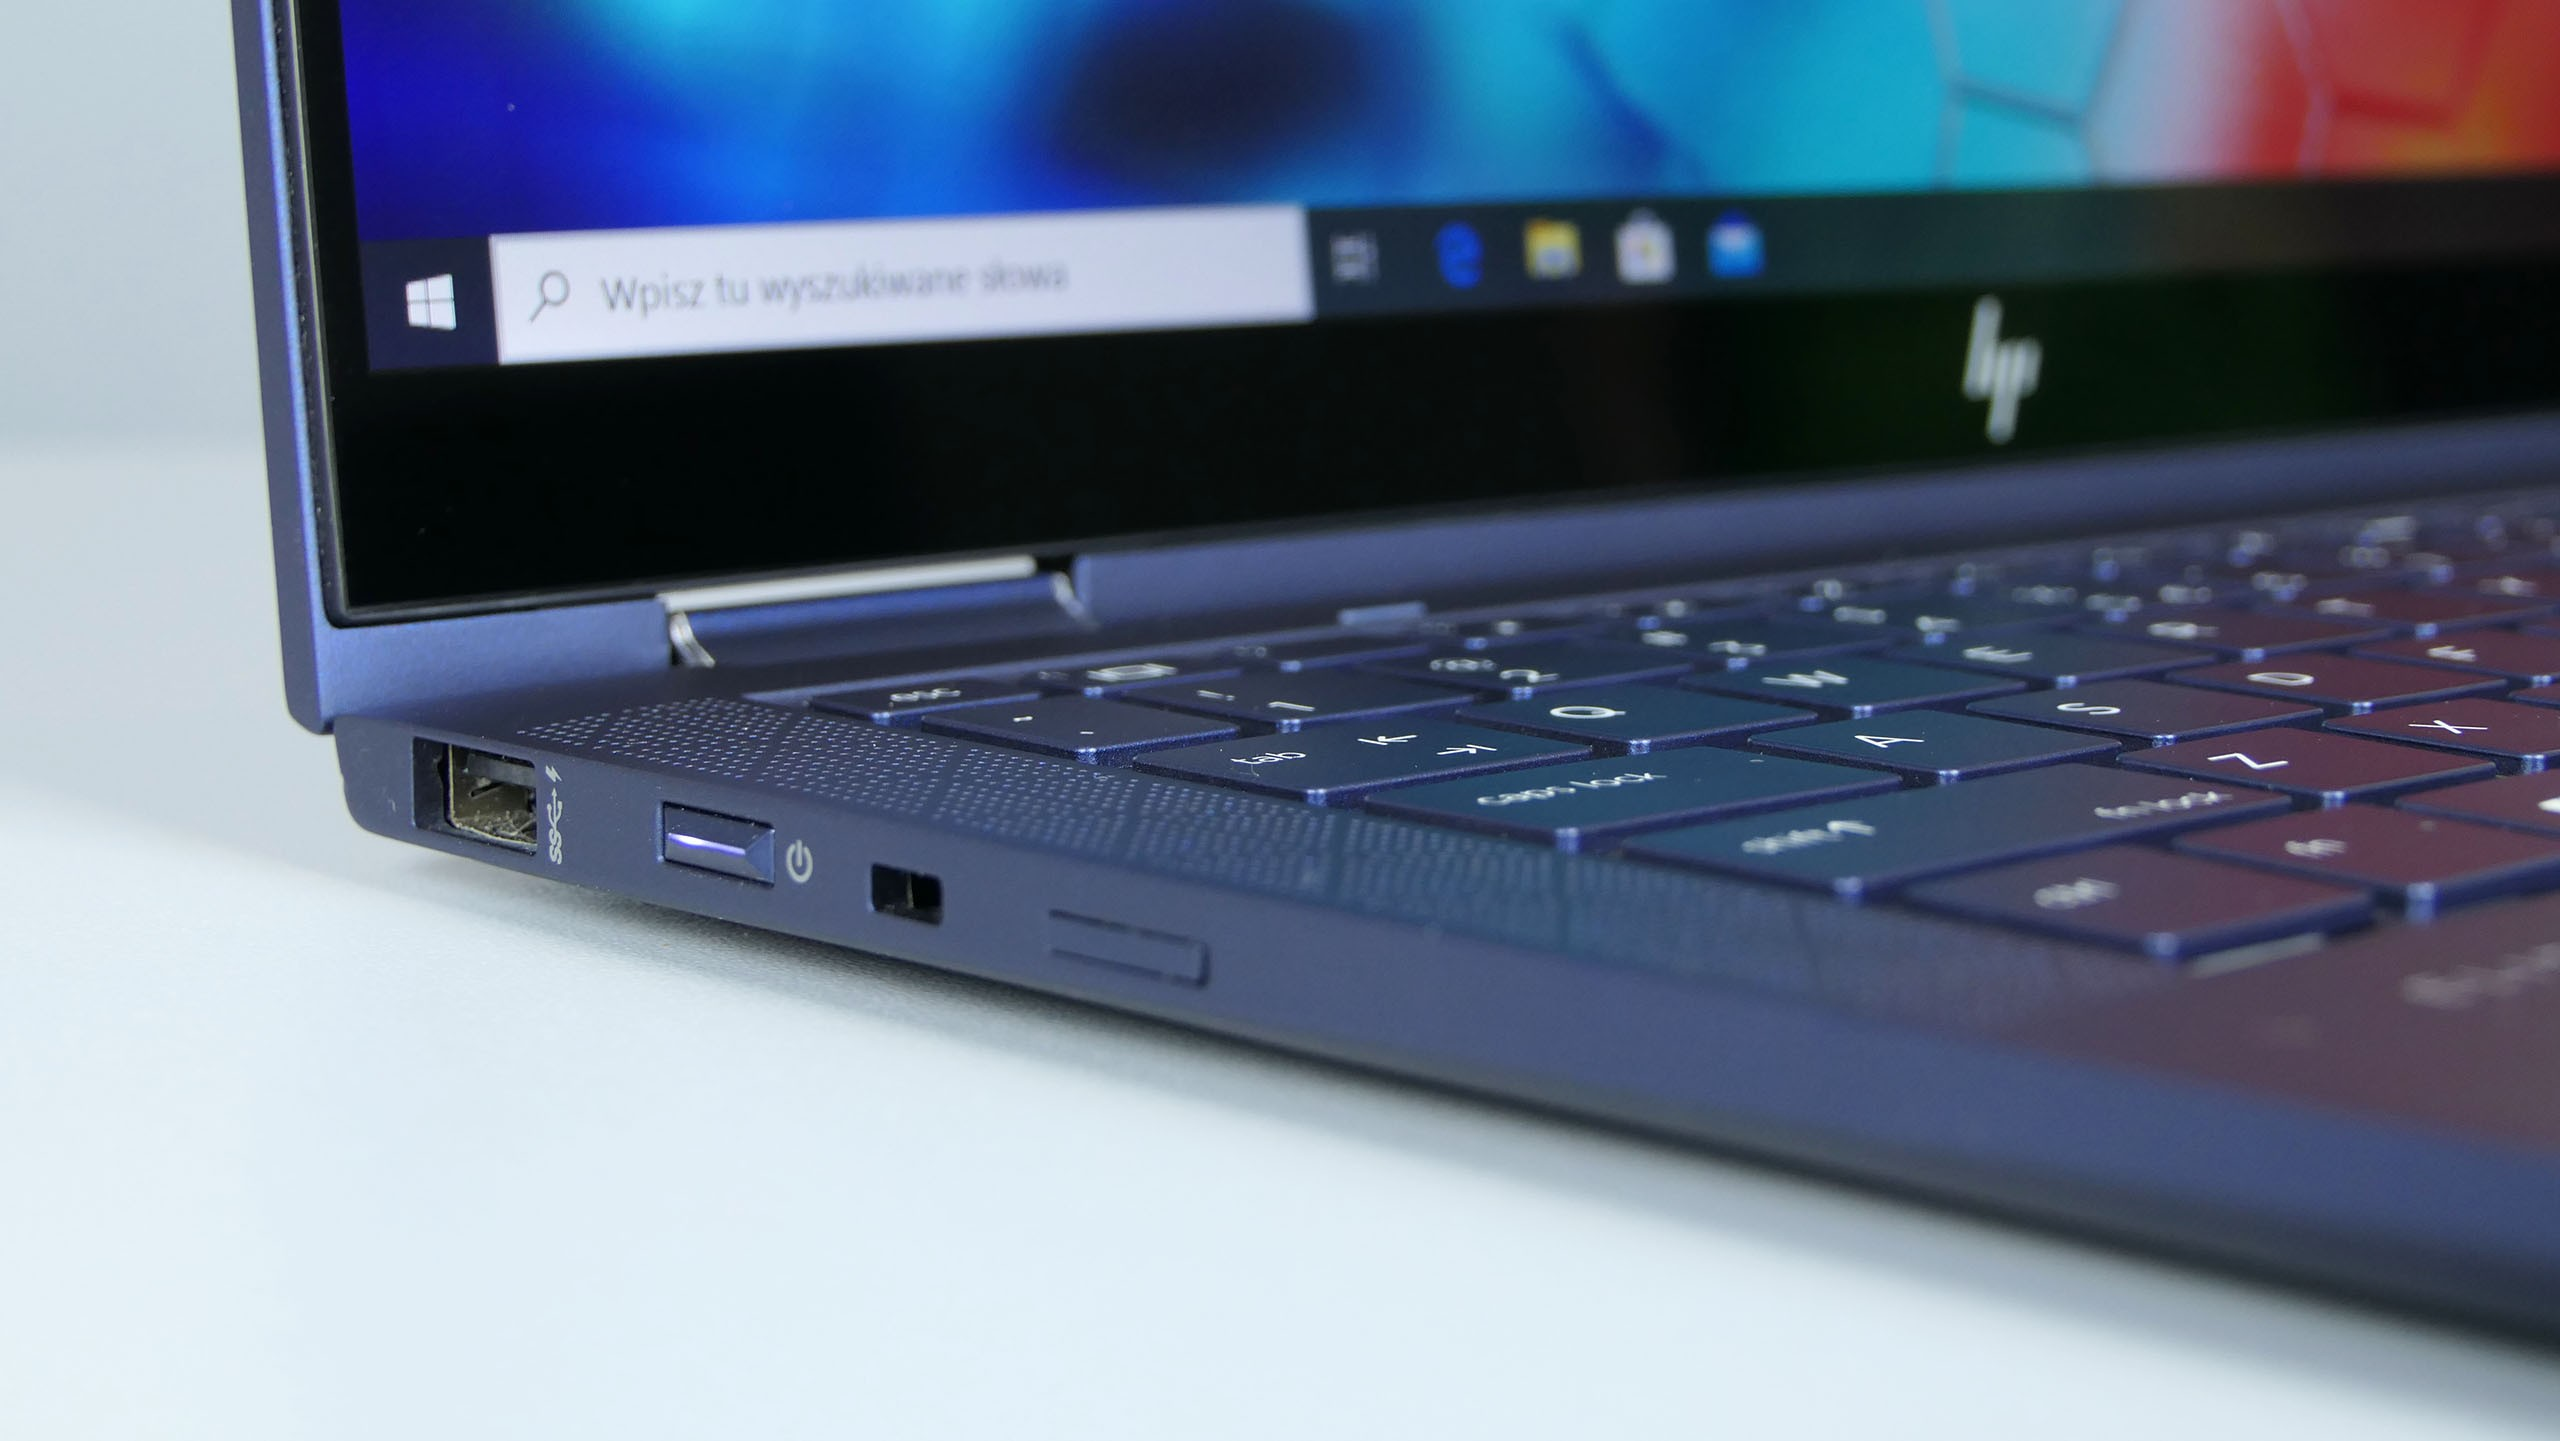 HP EliteBook Dragonfly - porty na lewym boku: USB 3.0